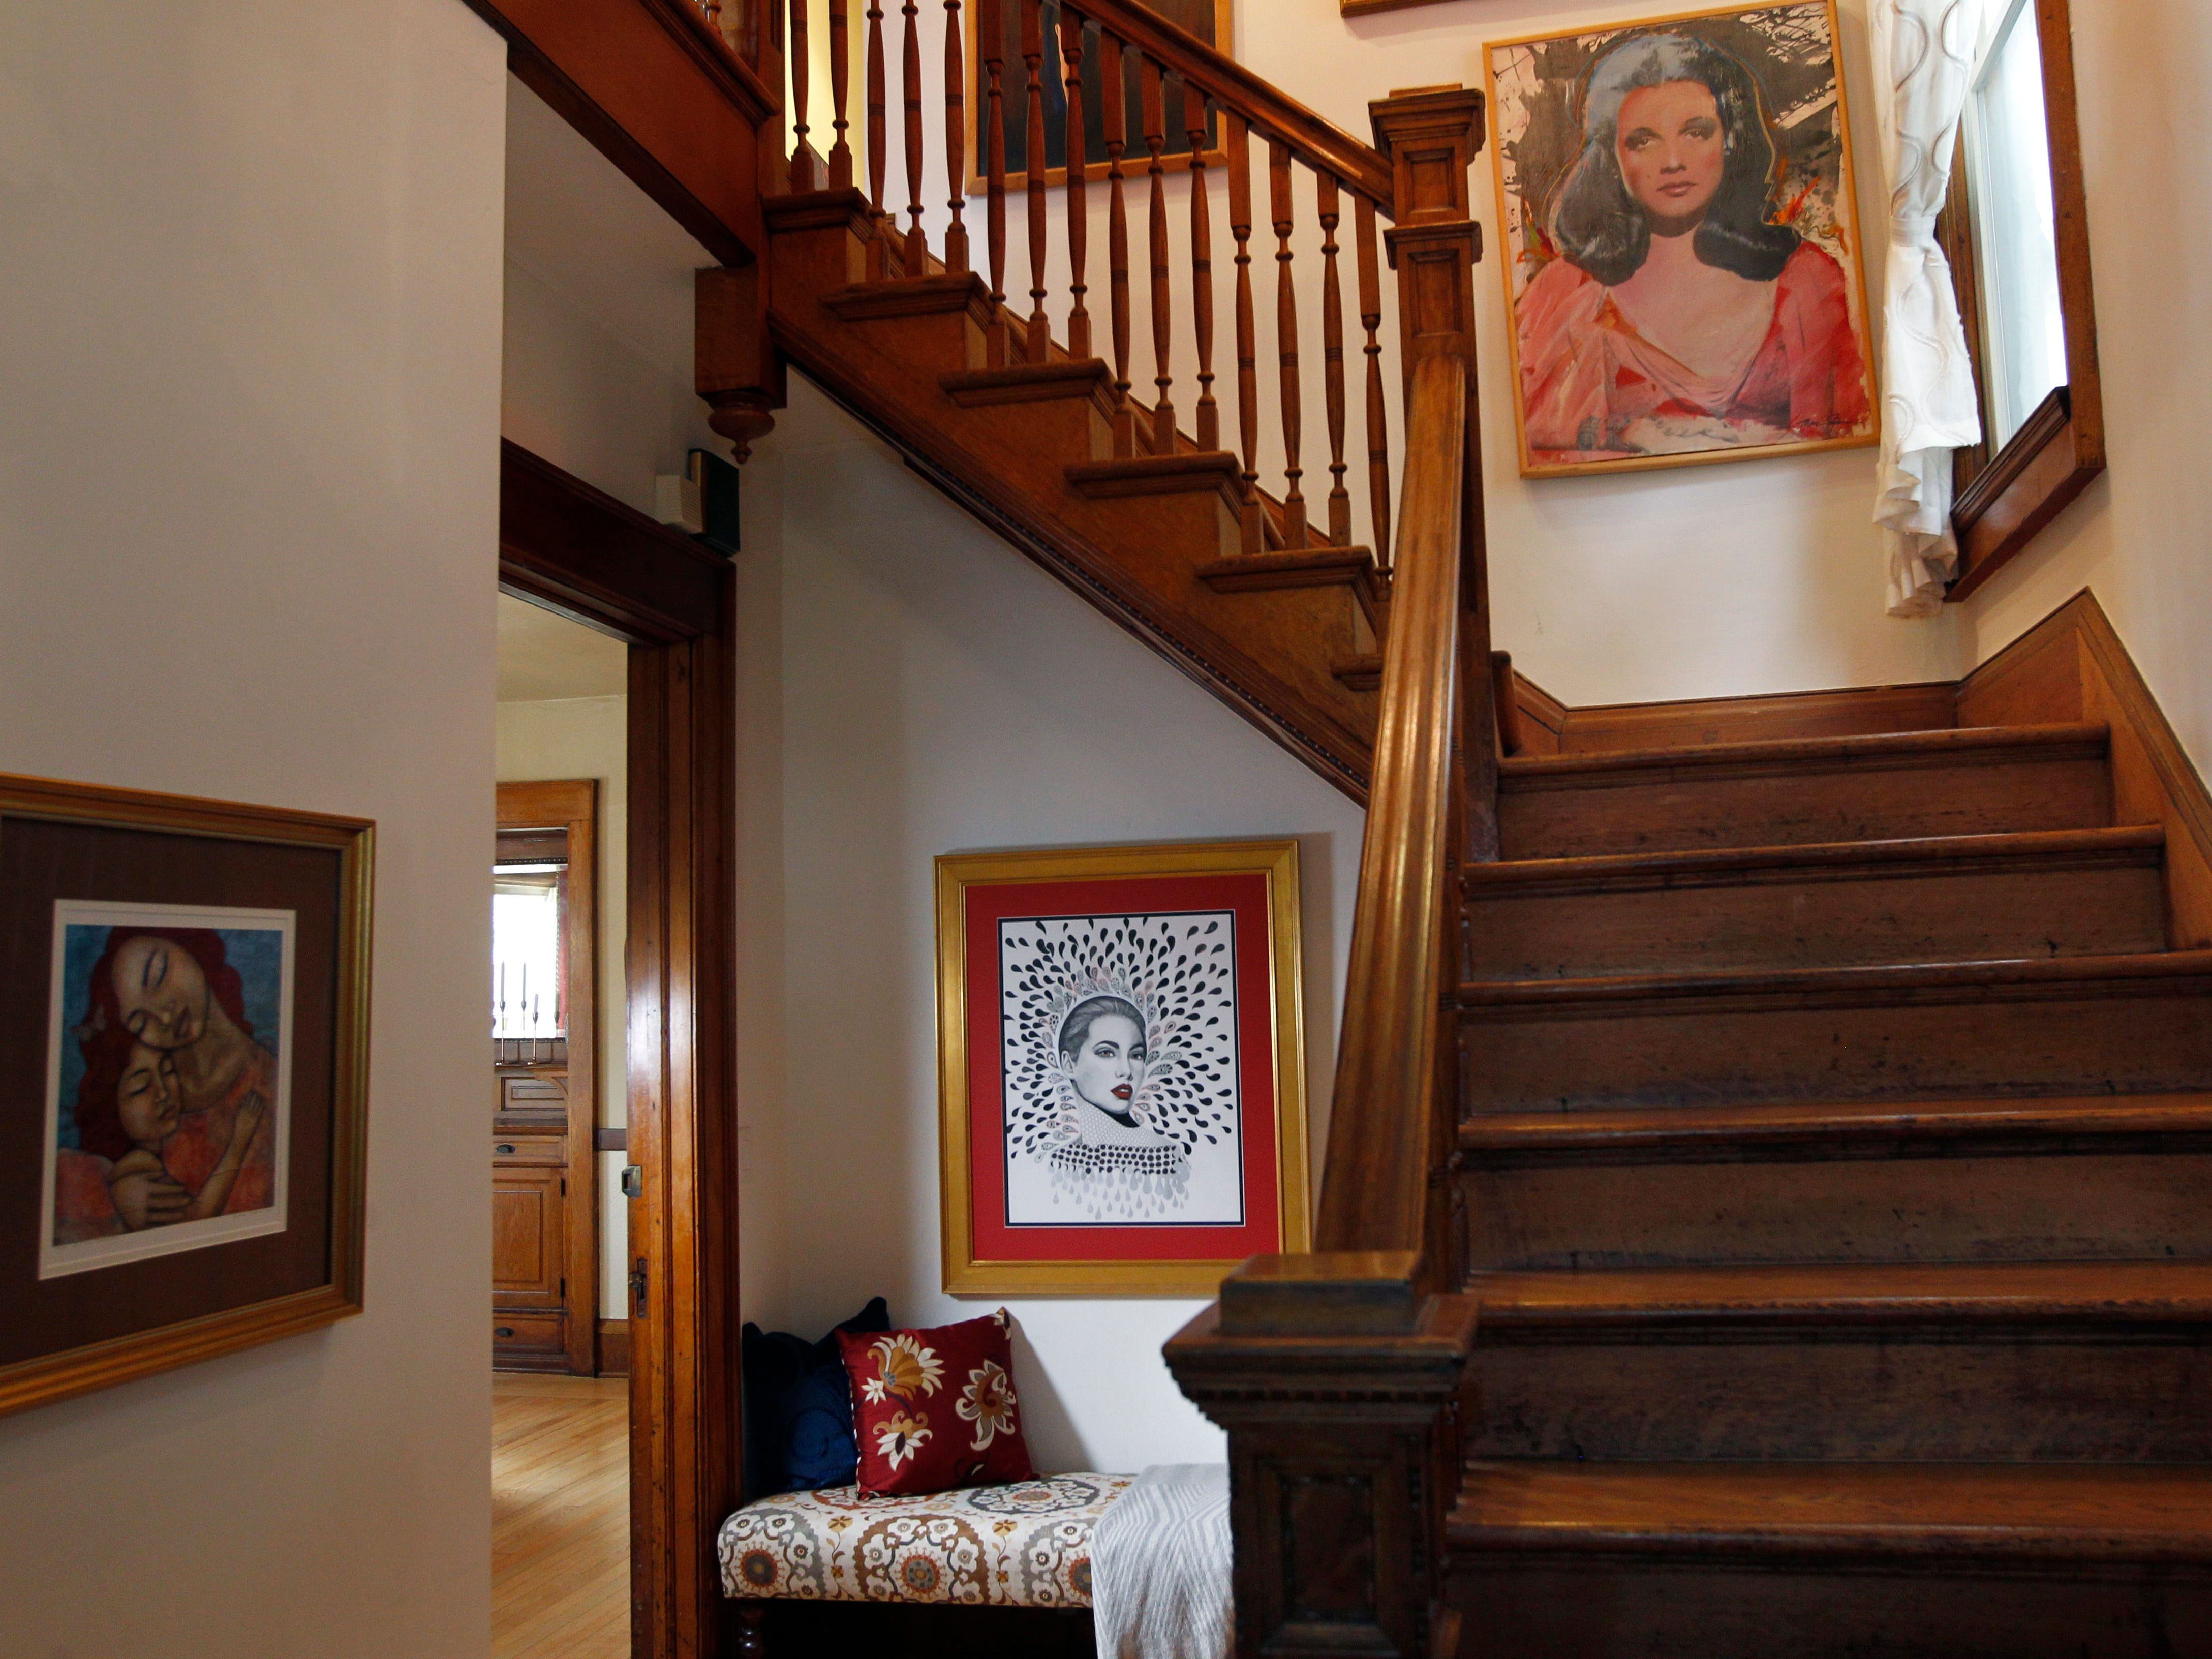 An original pen and ink art piece by homeowner Mara Duckens is displayed near the stairs. The home is filled with artworks from a variety of artists whose work the couple has collected over the years.